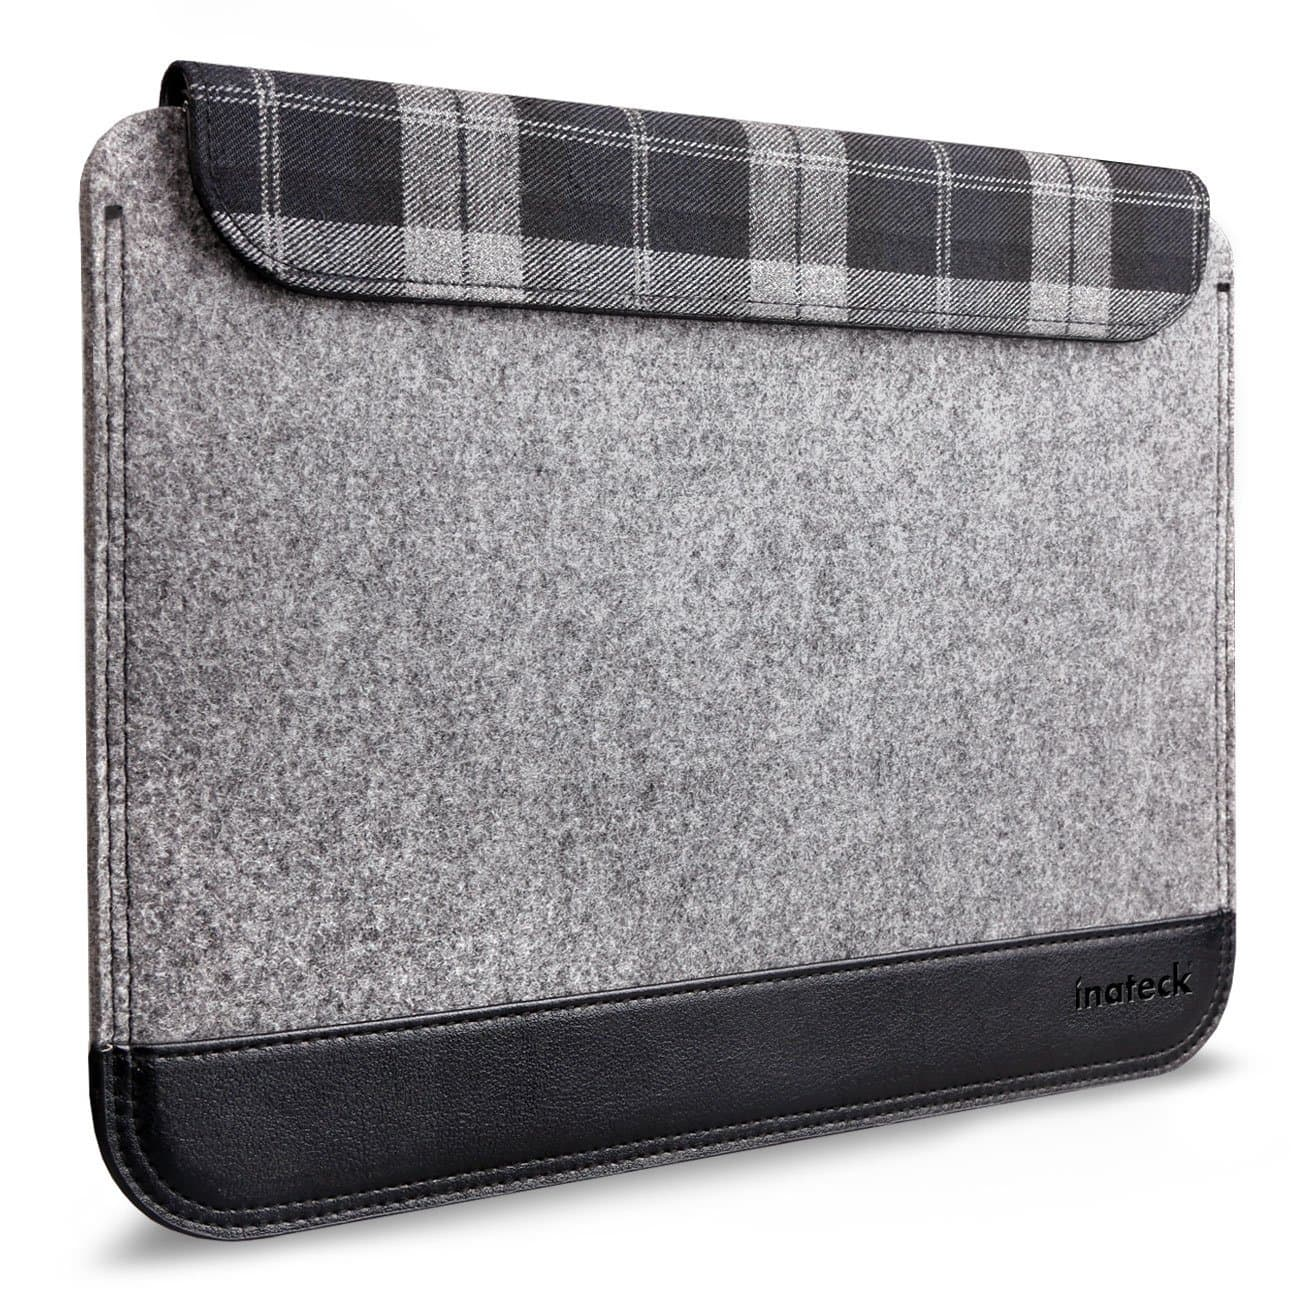 "Ultra Slim Inateck 11-11.6 Inch MacBook Air Sleeve Case Cover Protective Bag for Apple MacBook Air 11.6"" $3.99 @Amazon"